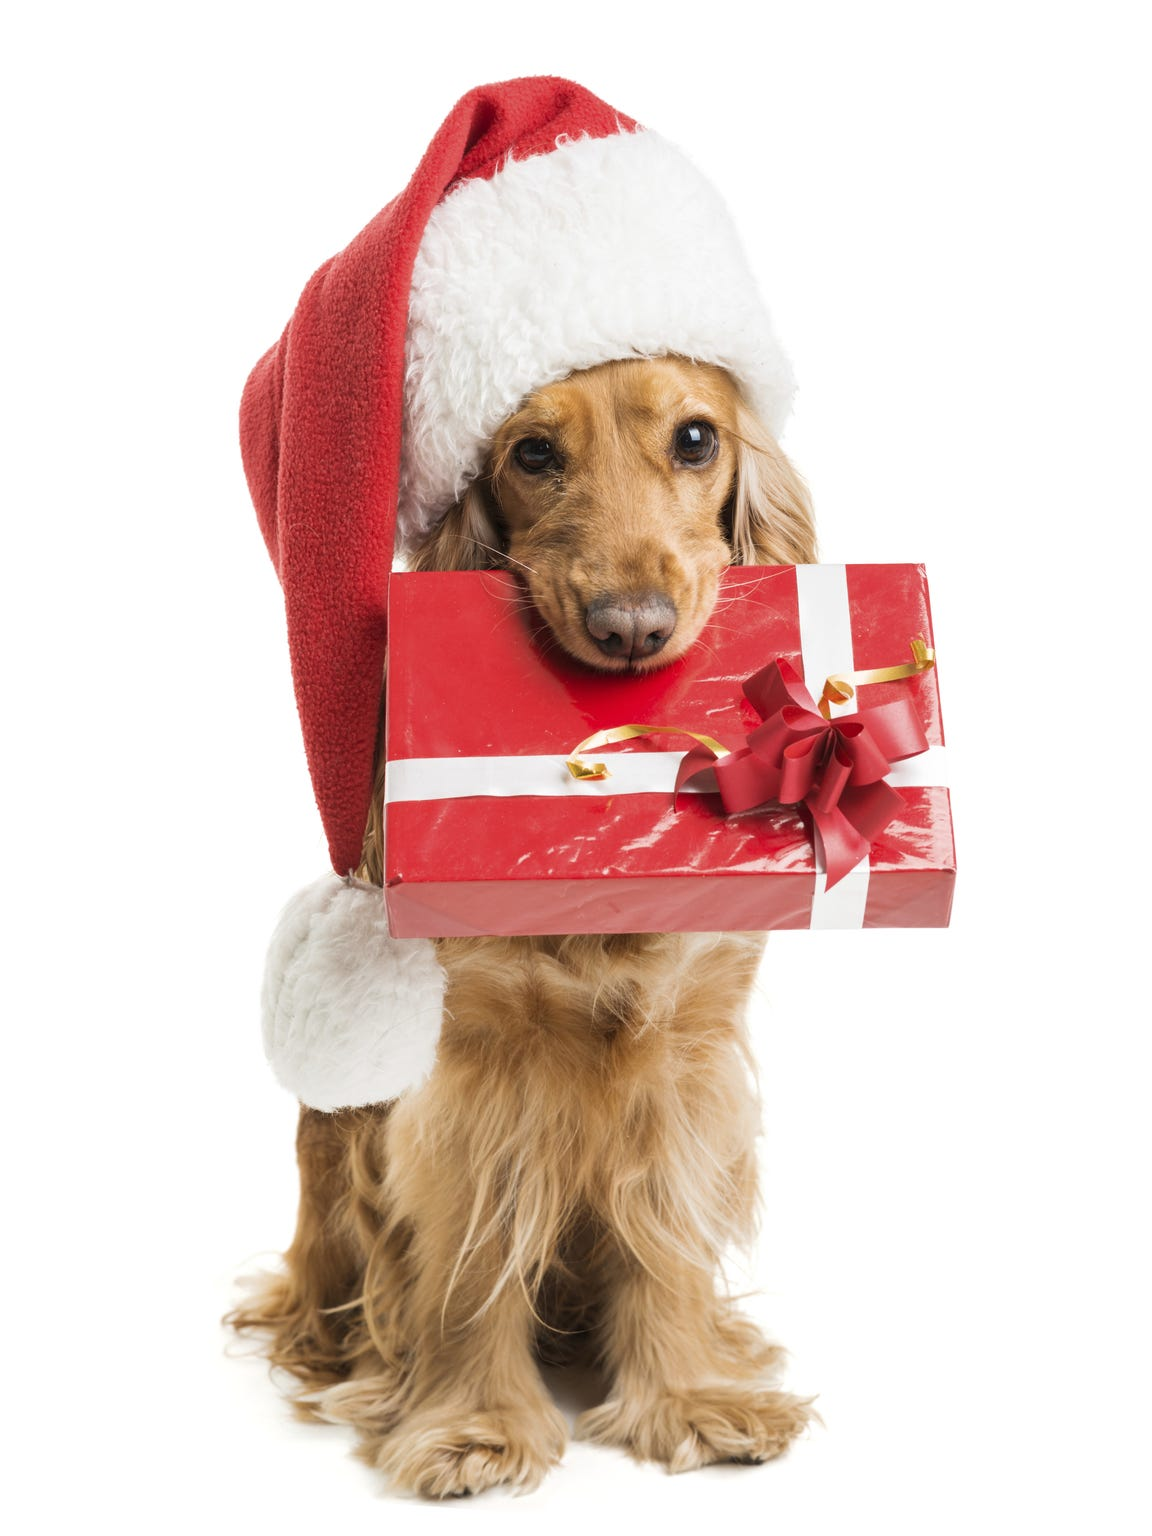 Get a photo of Santa with your dog or cat on Dec. 10 at the mall.